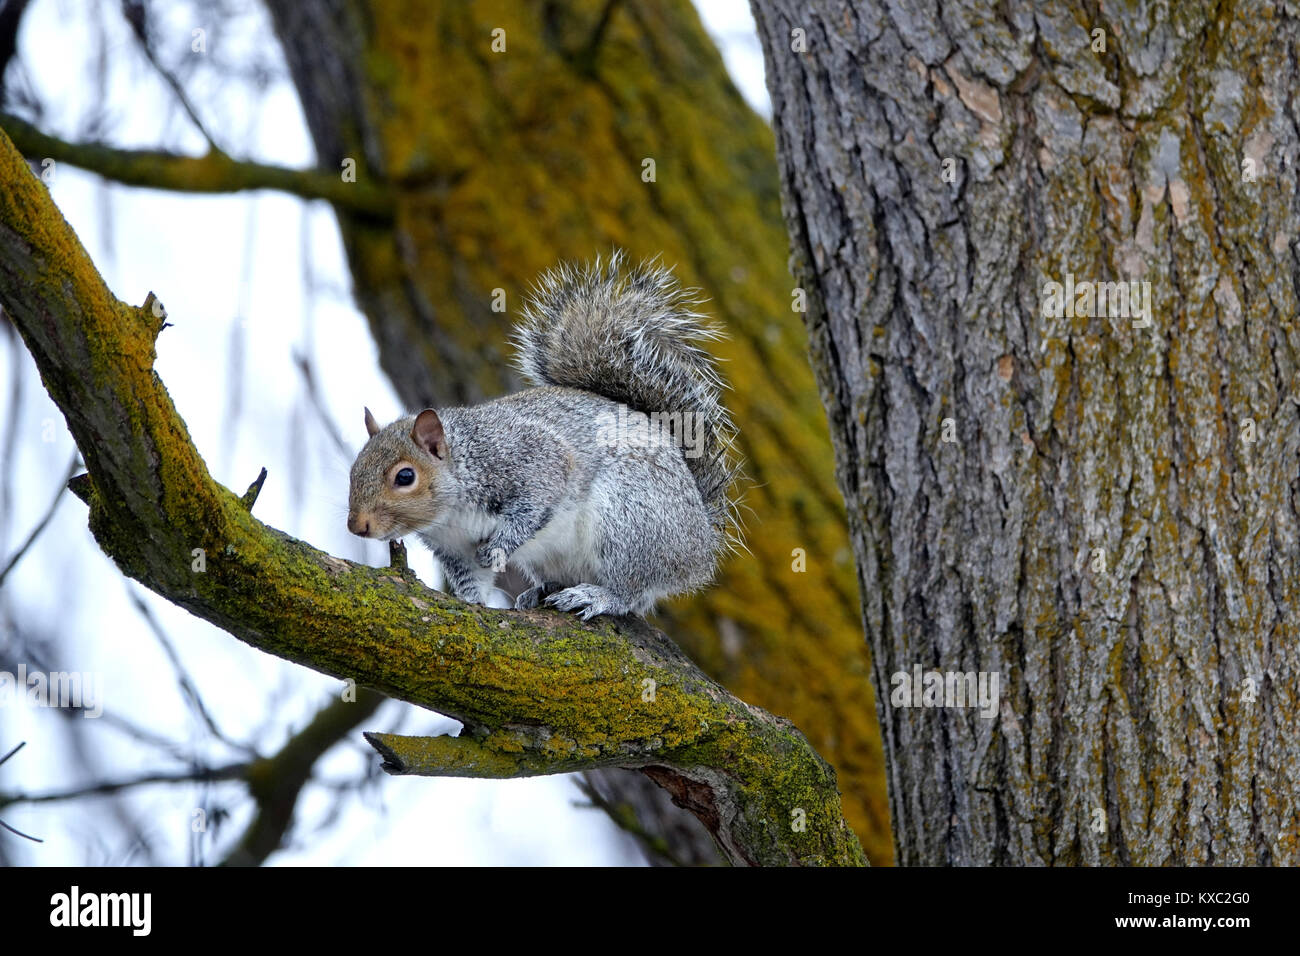 Eastern gray squirrels are mid-sized, with relatively narrow tails and short ears compared to western gray squirrels. - Stock Image